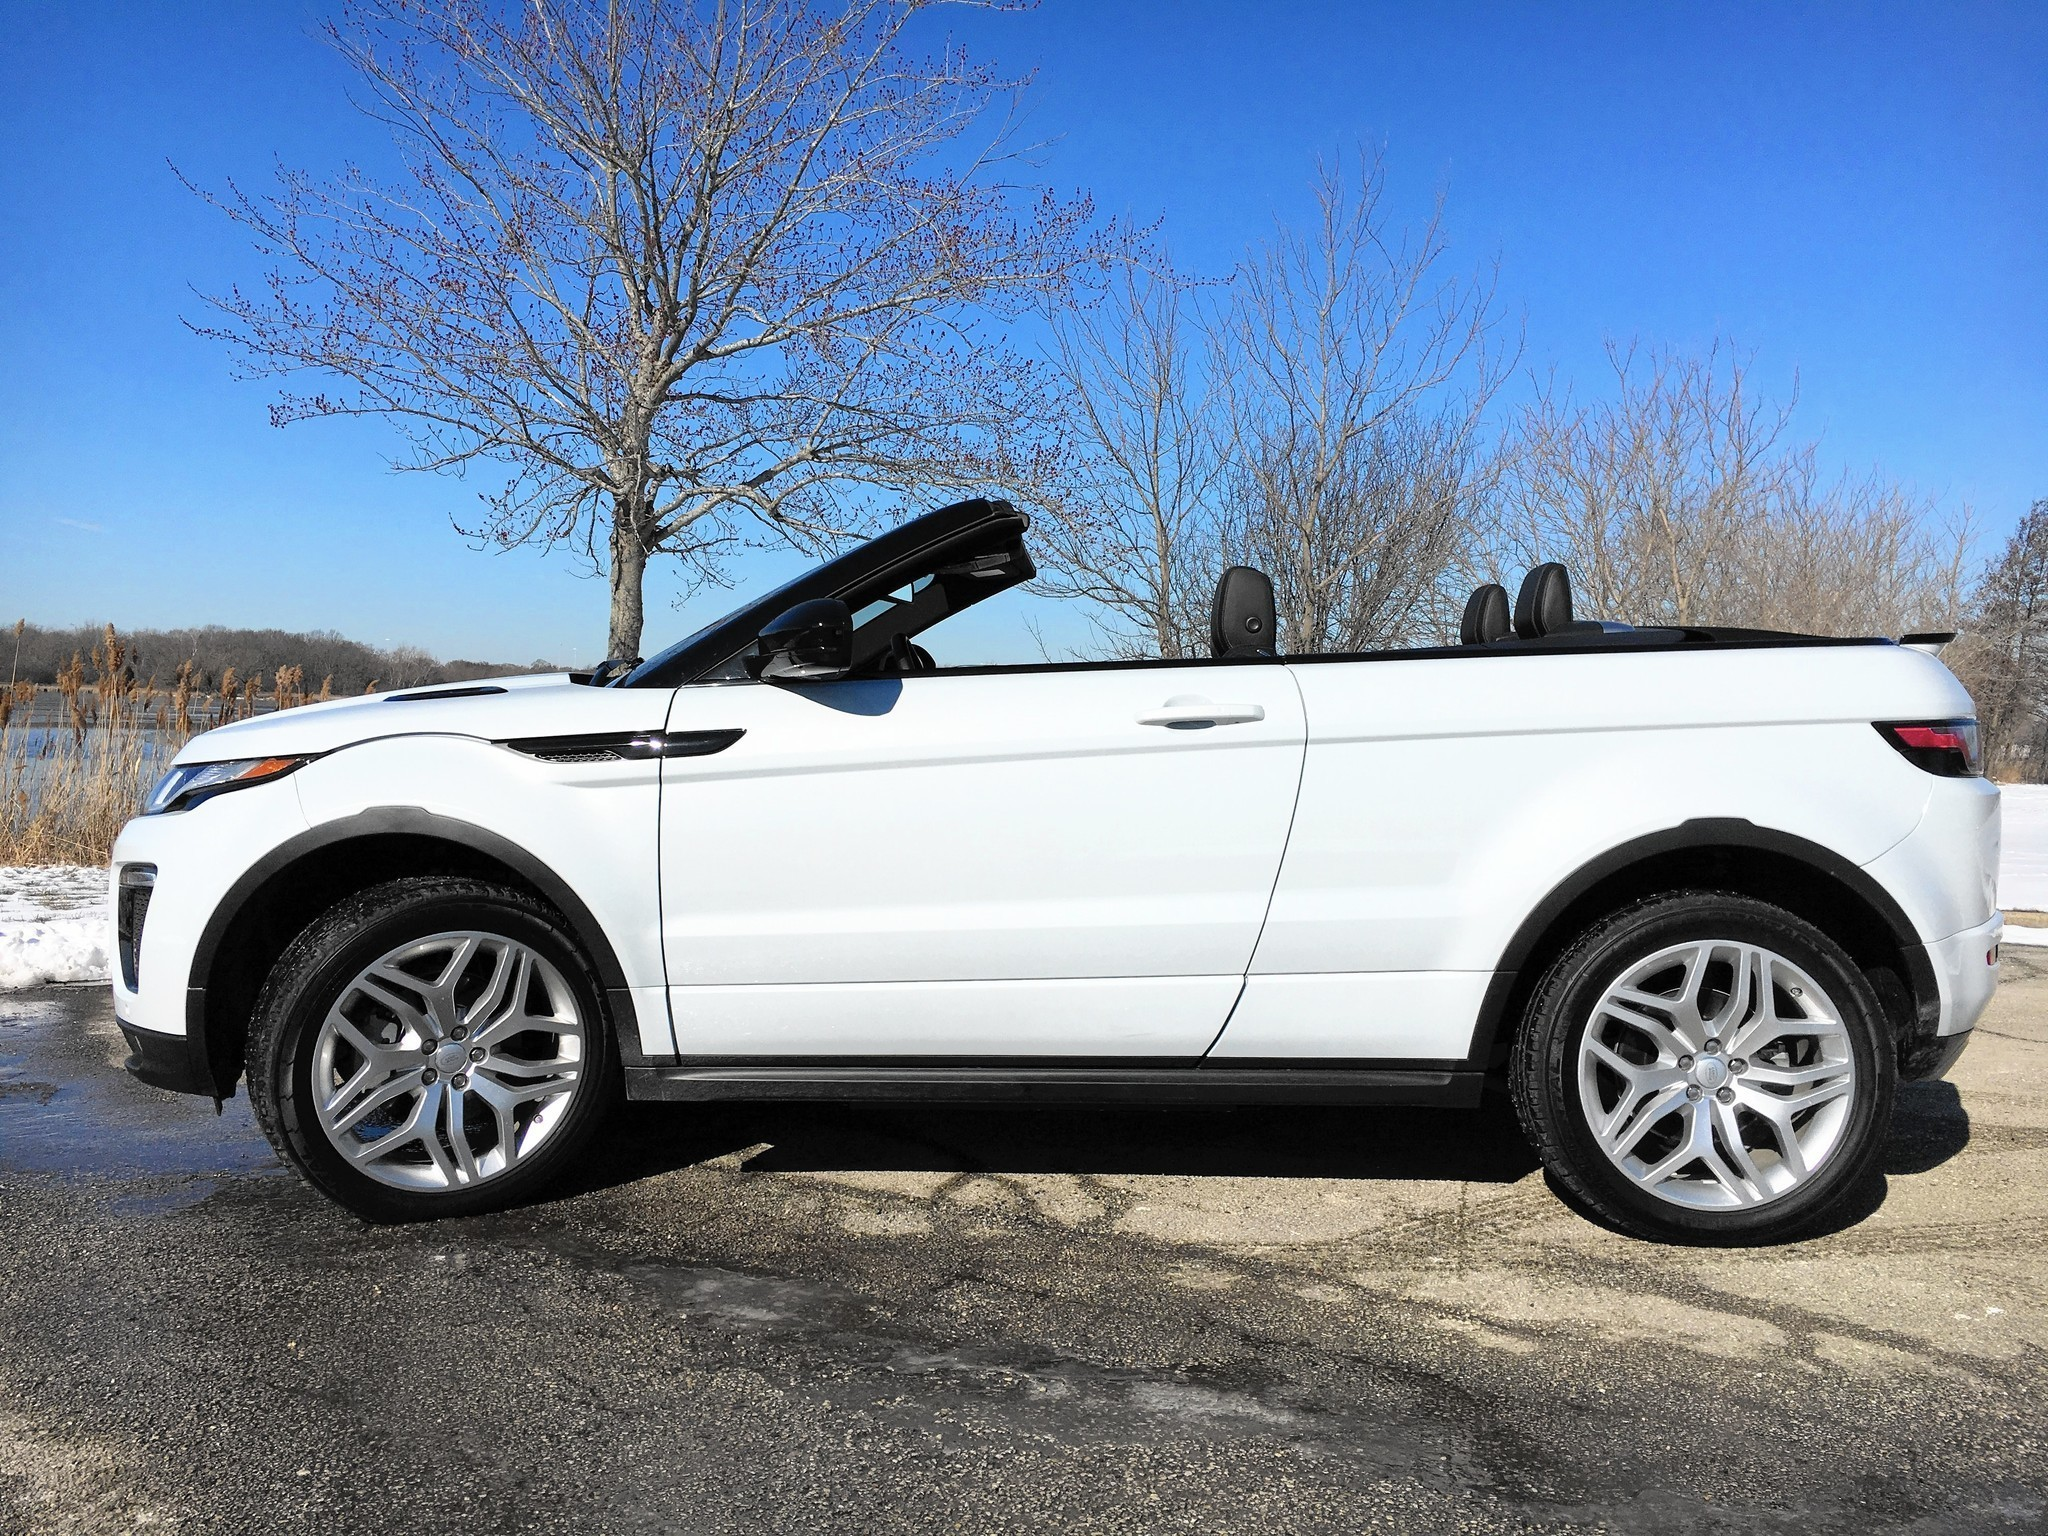 evoque crossover convertible built      driveway chicago tribune